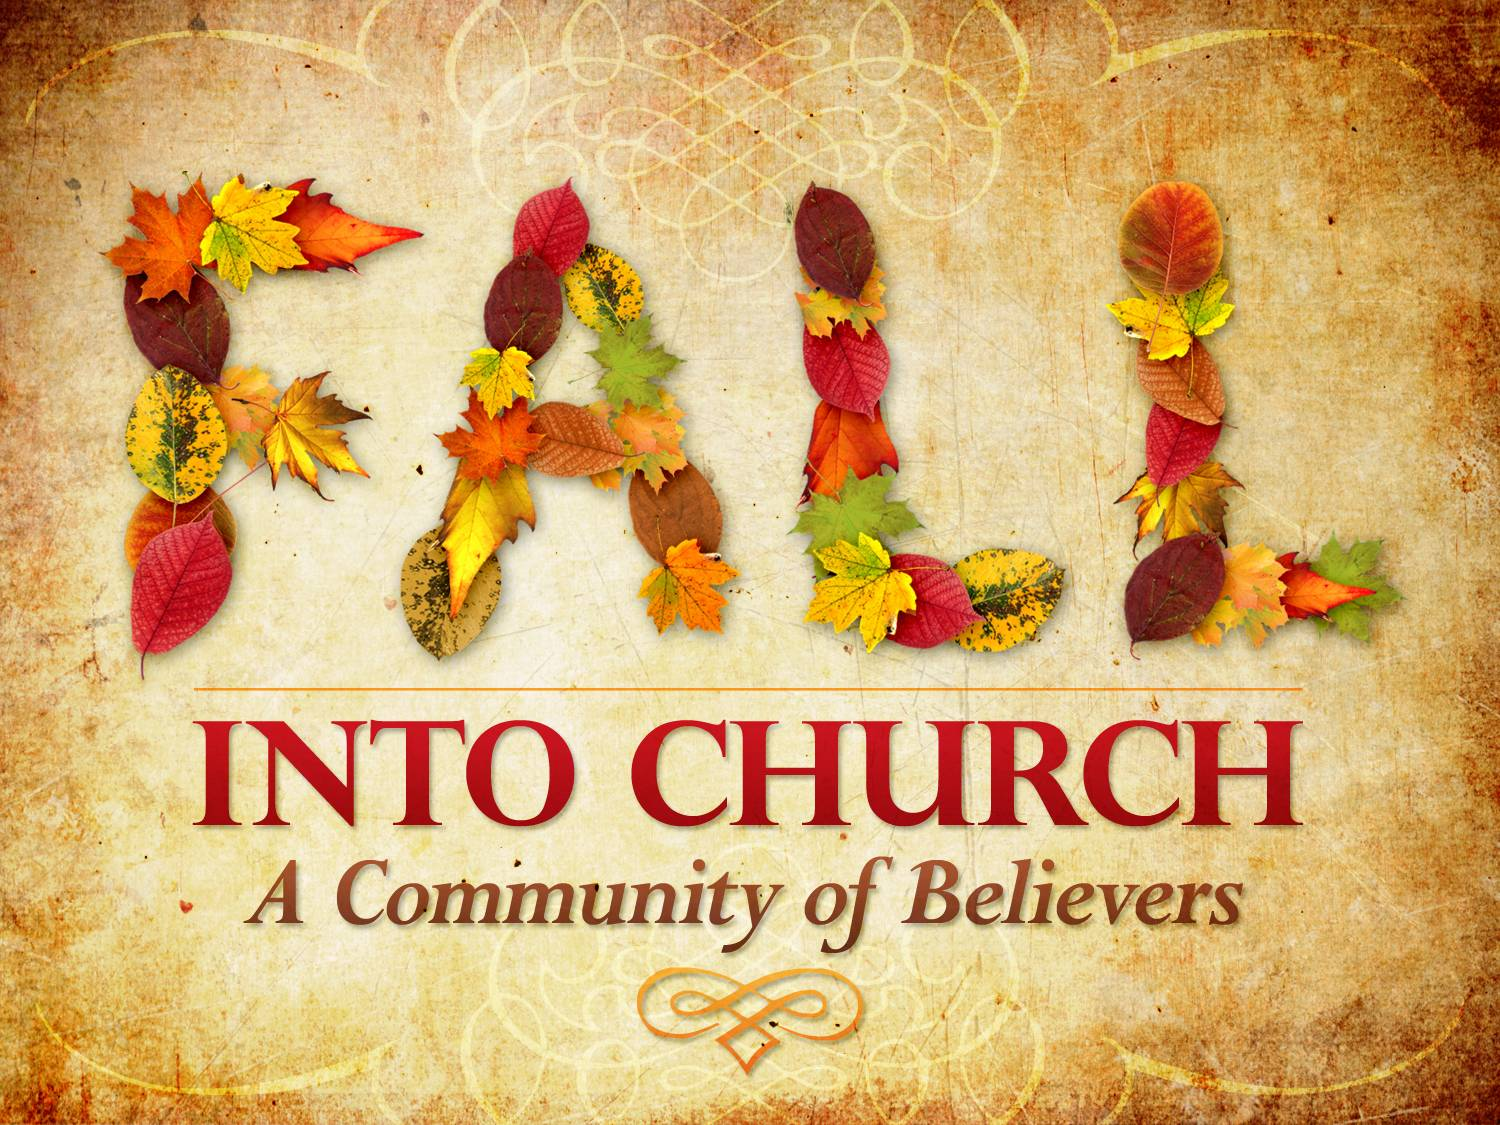 Christian Wallpaper Fall Offering Check Out The Fall Events For 2013